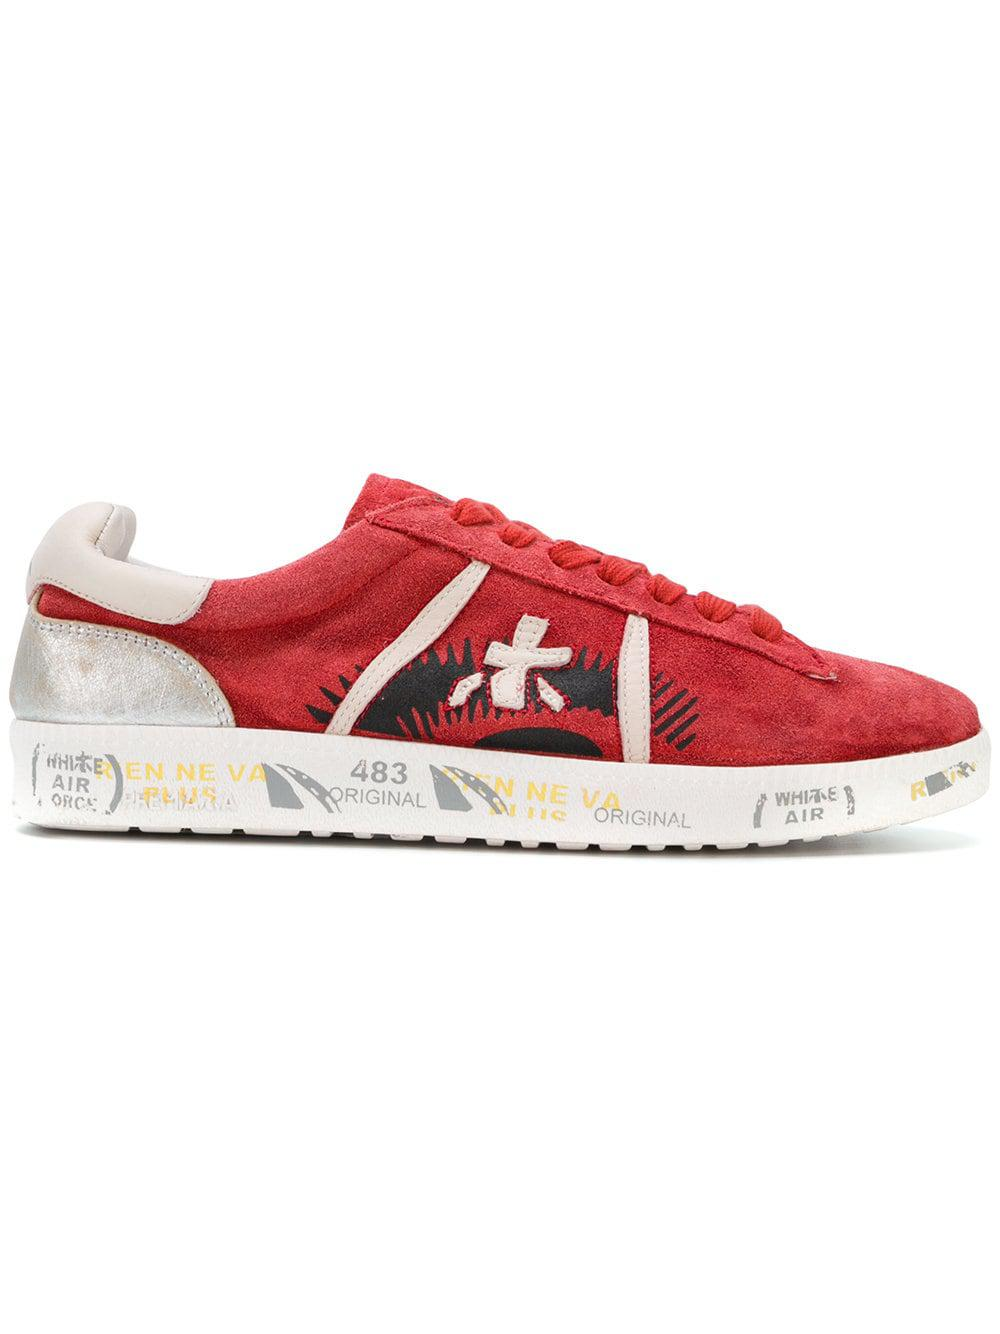 Premiata Leather Andy-d Sneakers in Red